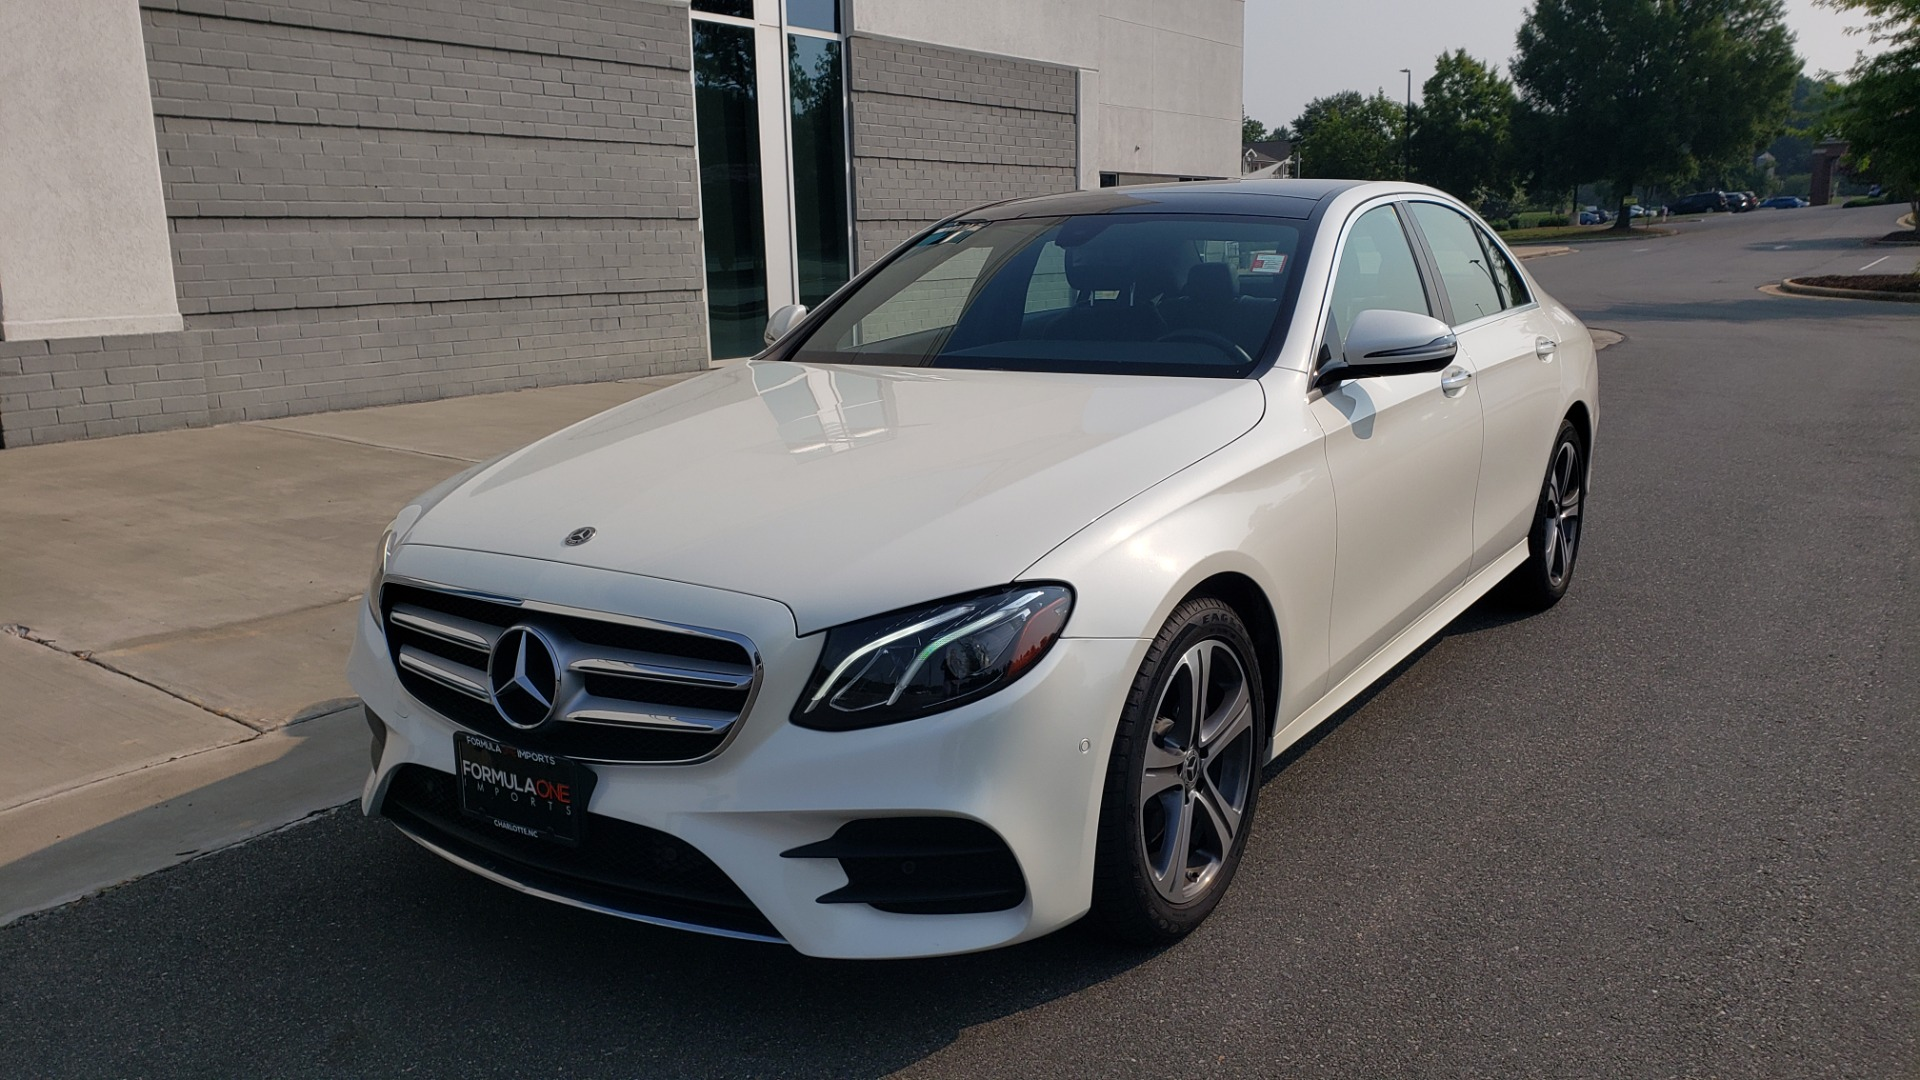 Used 2018 Mercedes-Benz E-CLASS E 300 4MATIC / PREMIUM / NAV / PANO-ROOF / BURMESTER / REARVIEW for sale $41,995 at Formula Imports in Charlotte NC 28227 3